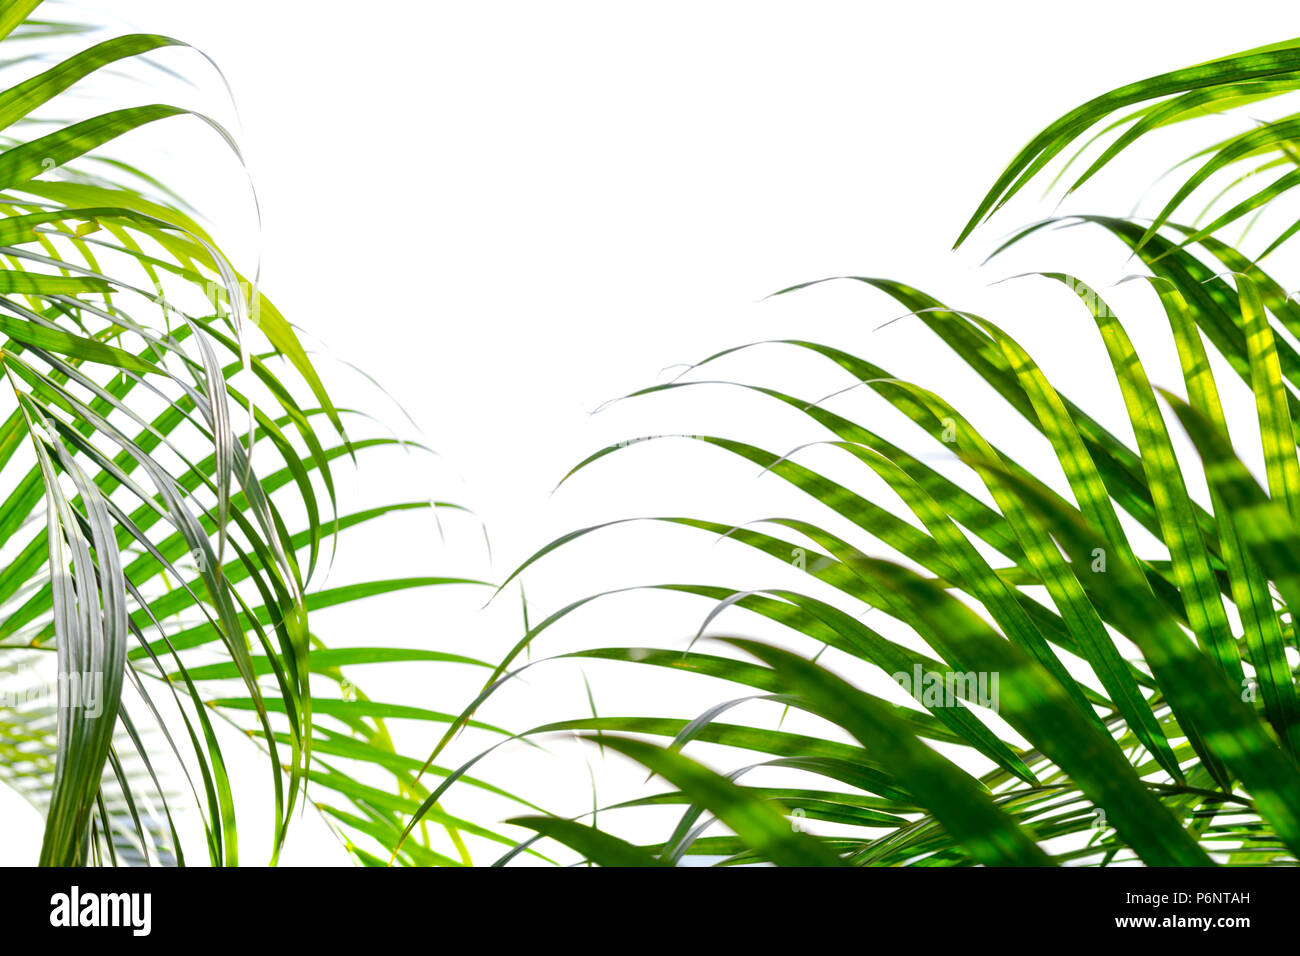 Chrysalidocarpus Space For Life Bushes Of Green Palm Leaves Isolated On White Background Tropical